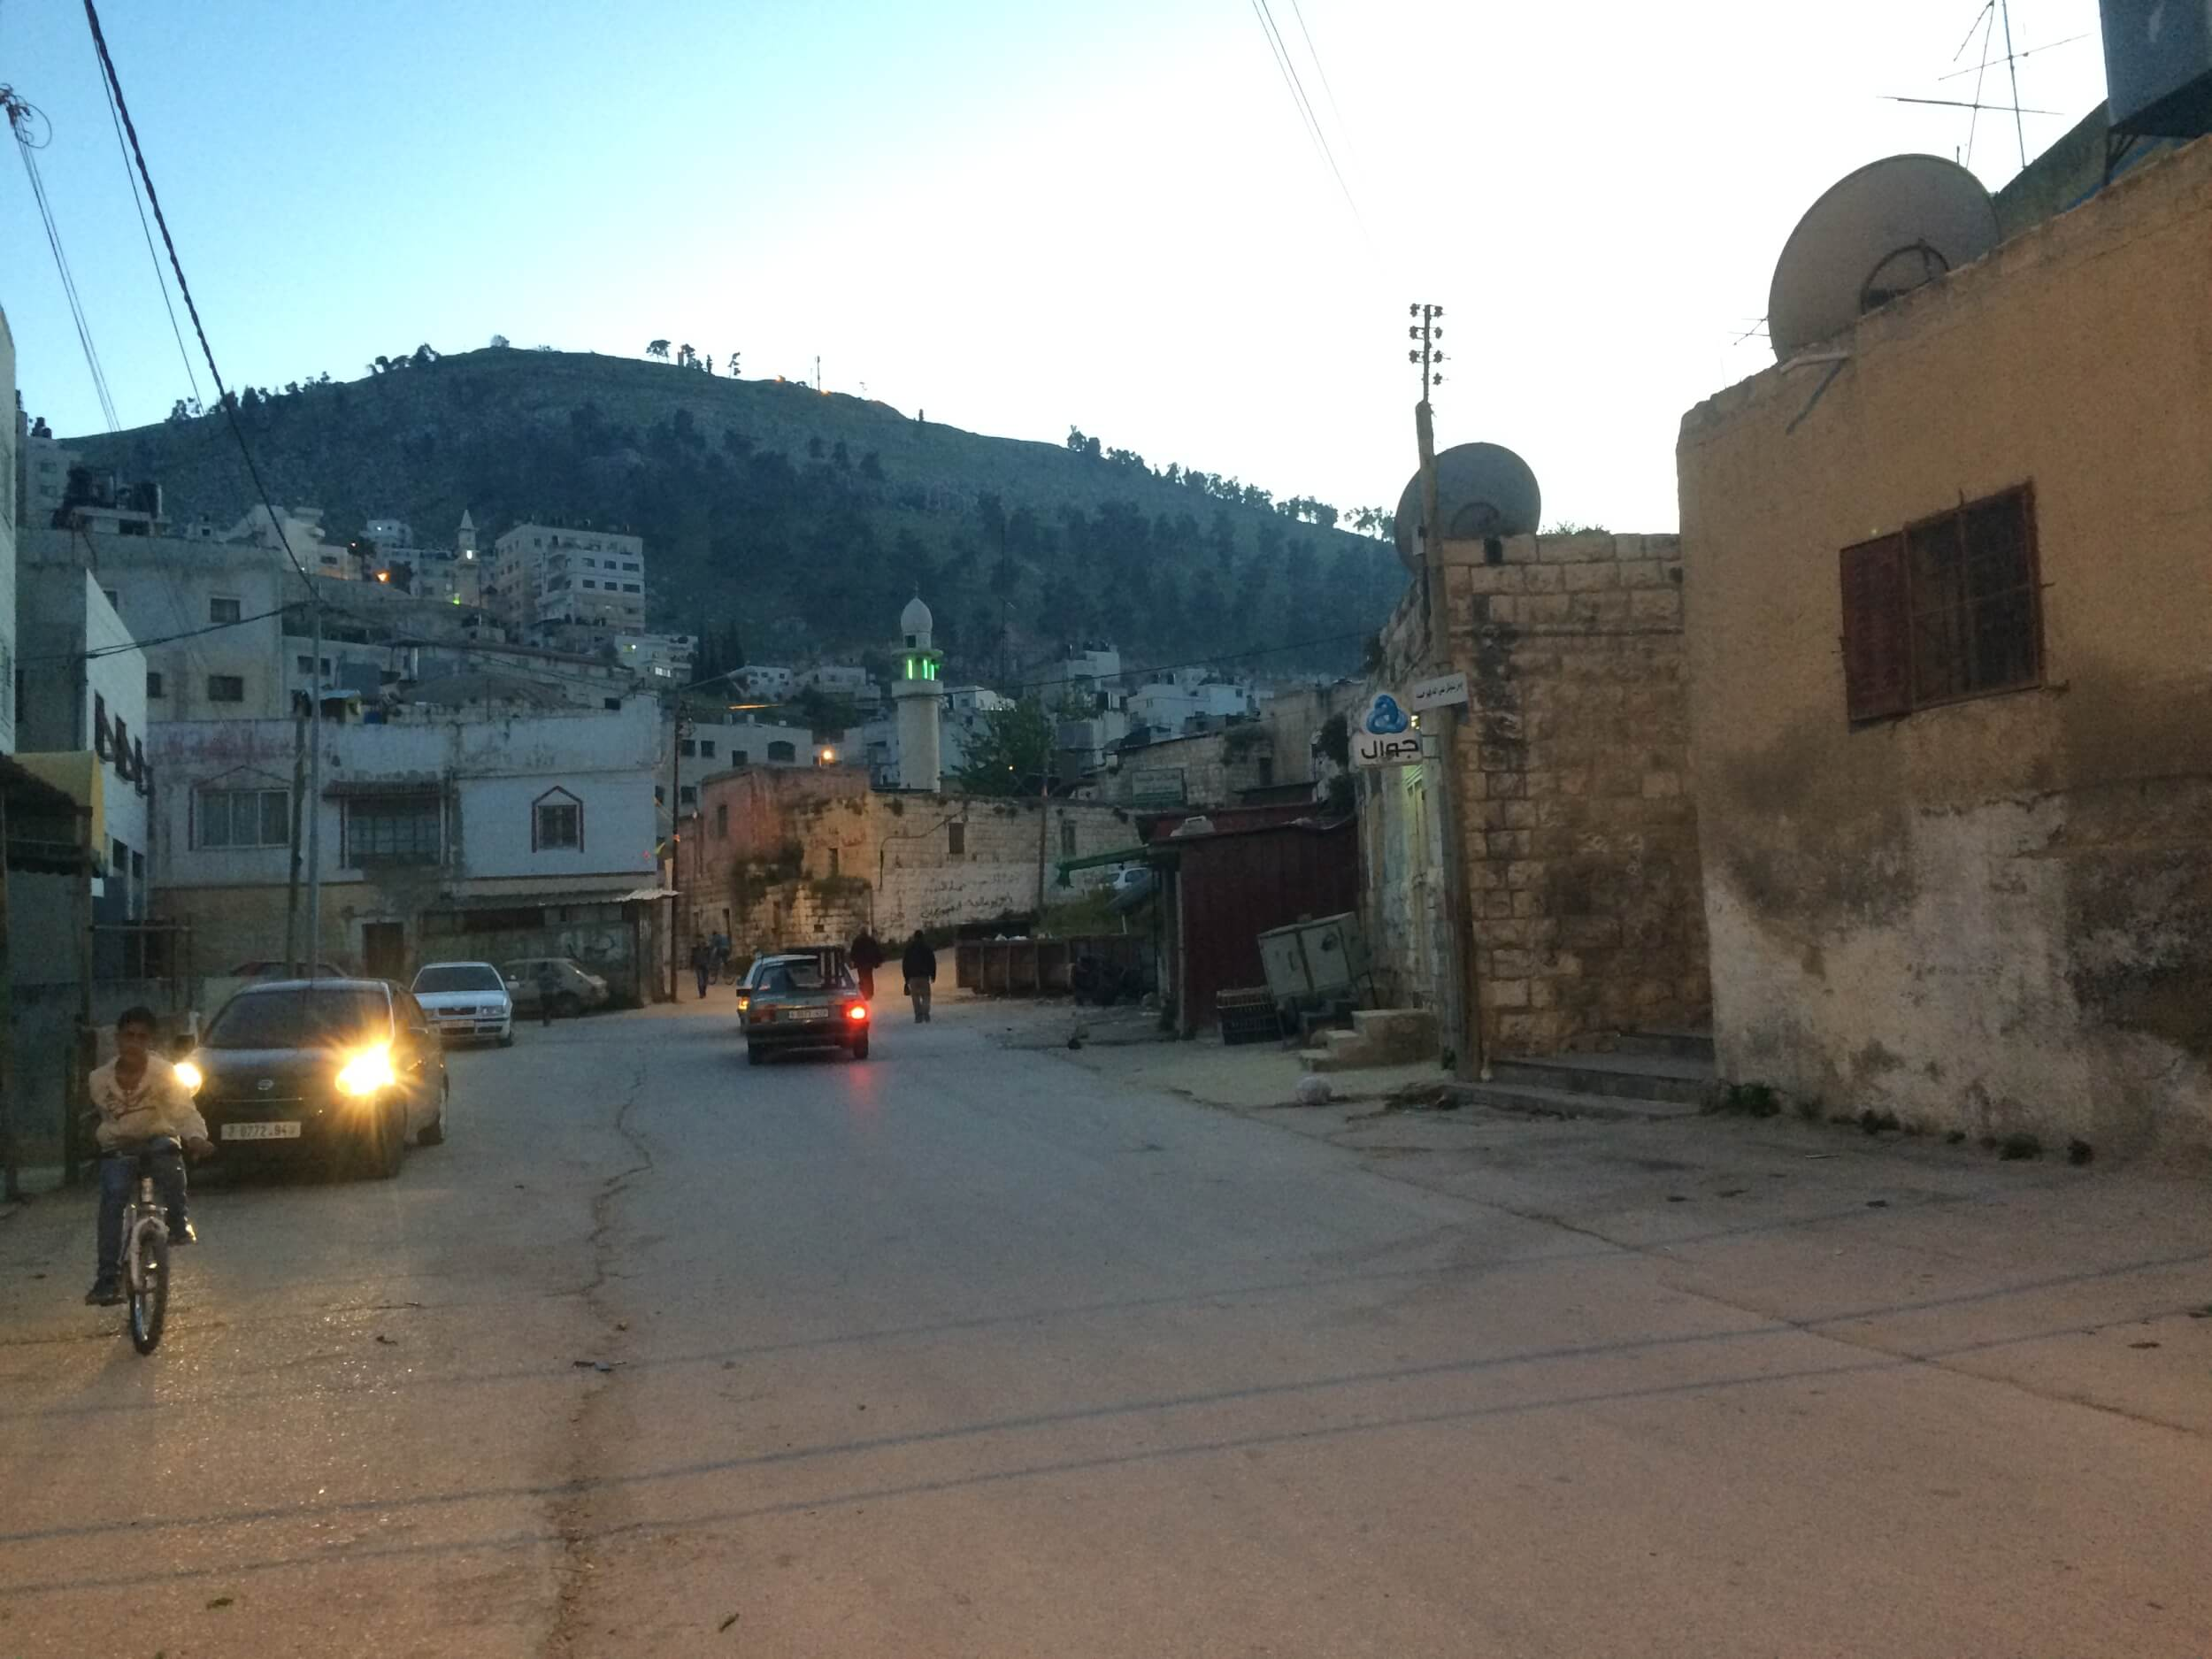 The Palestinian neighborhood immediately beside the Joseph's Tomb compound. This street leads away from Joseph's Tomb toward Mount Gerizim, the most sacred site for the Samaritan community of Palestine. (Photo: Alex Shams)